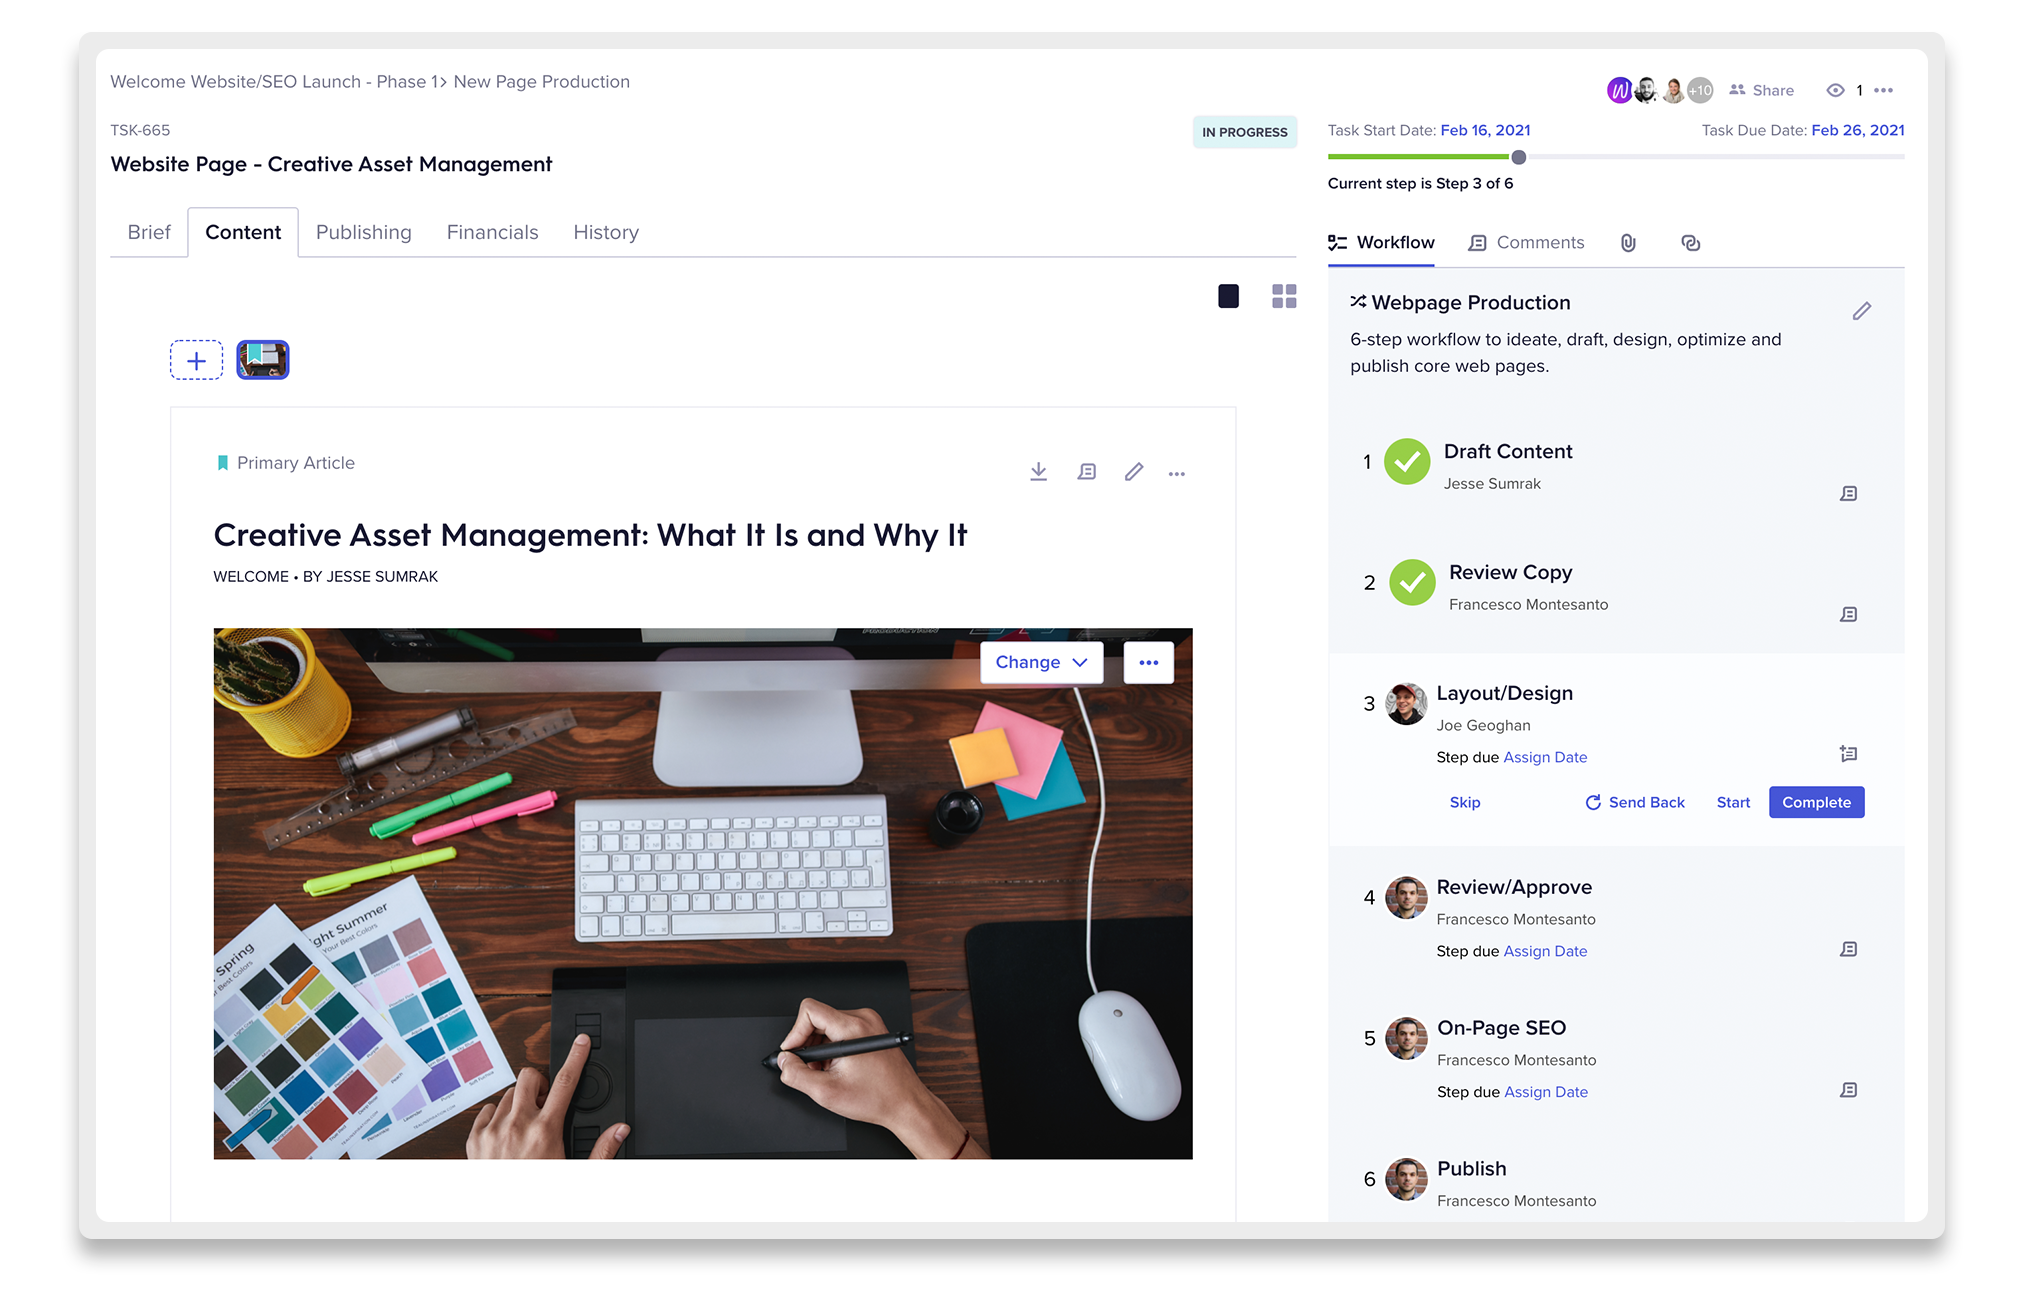 Welcome Content Workflow